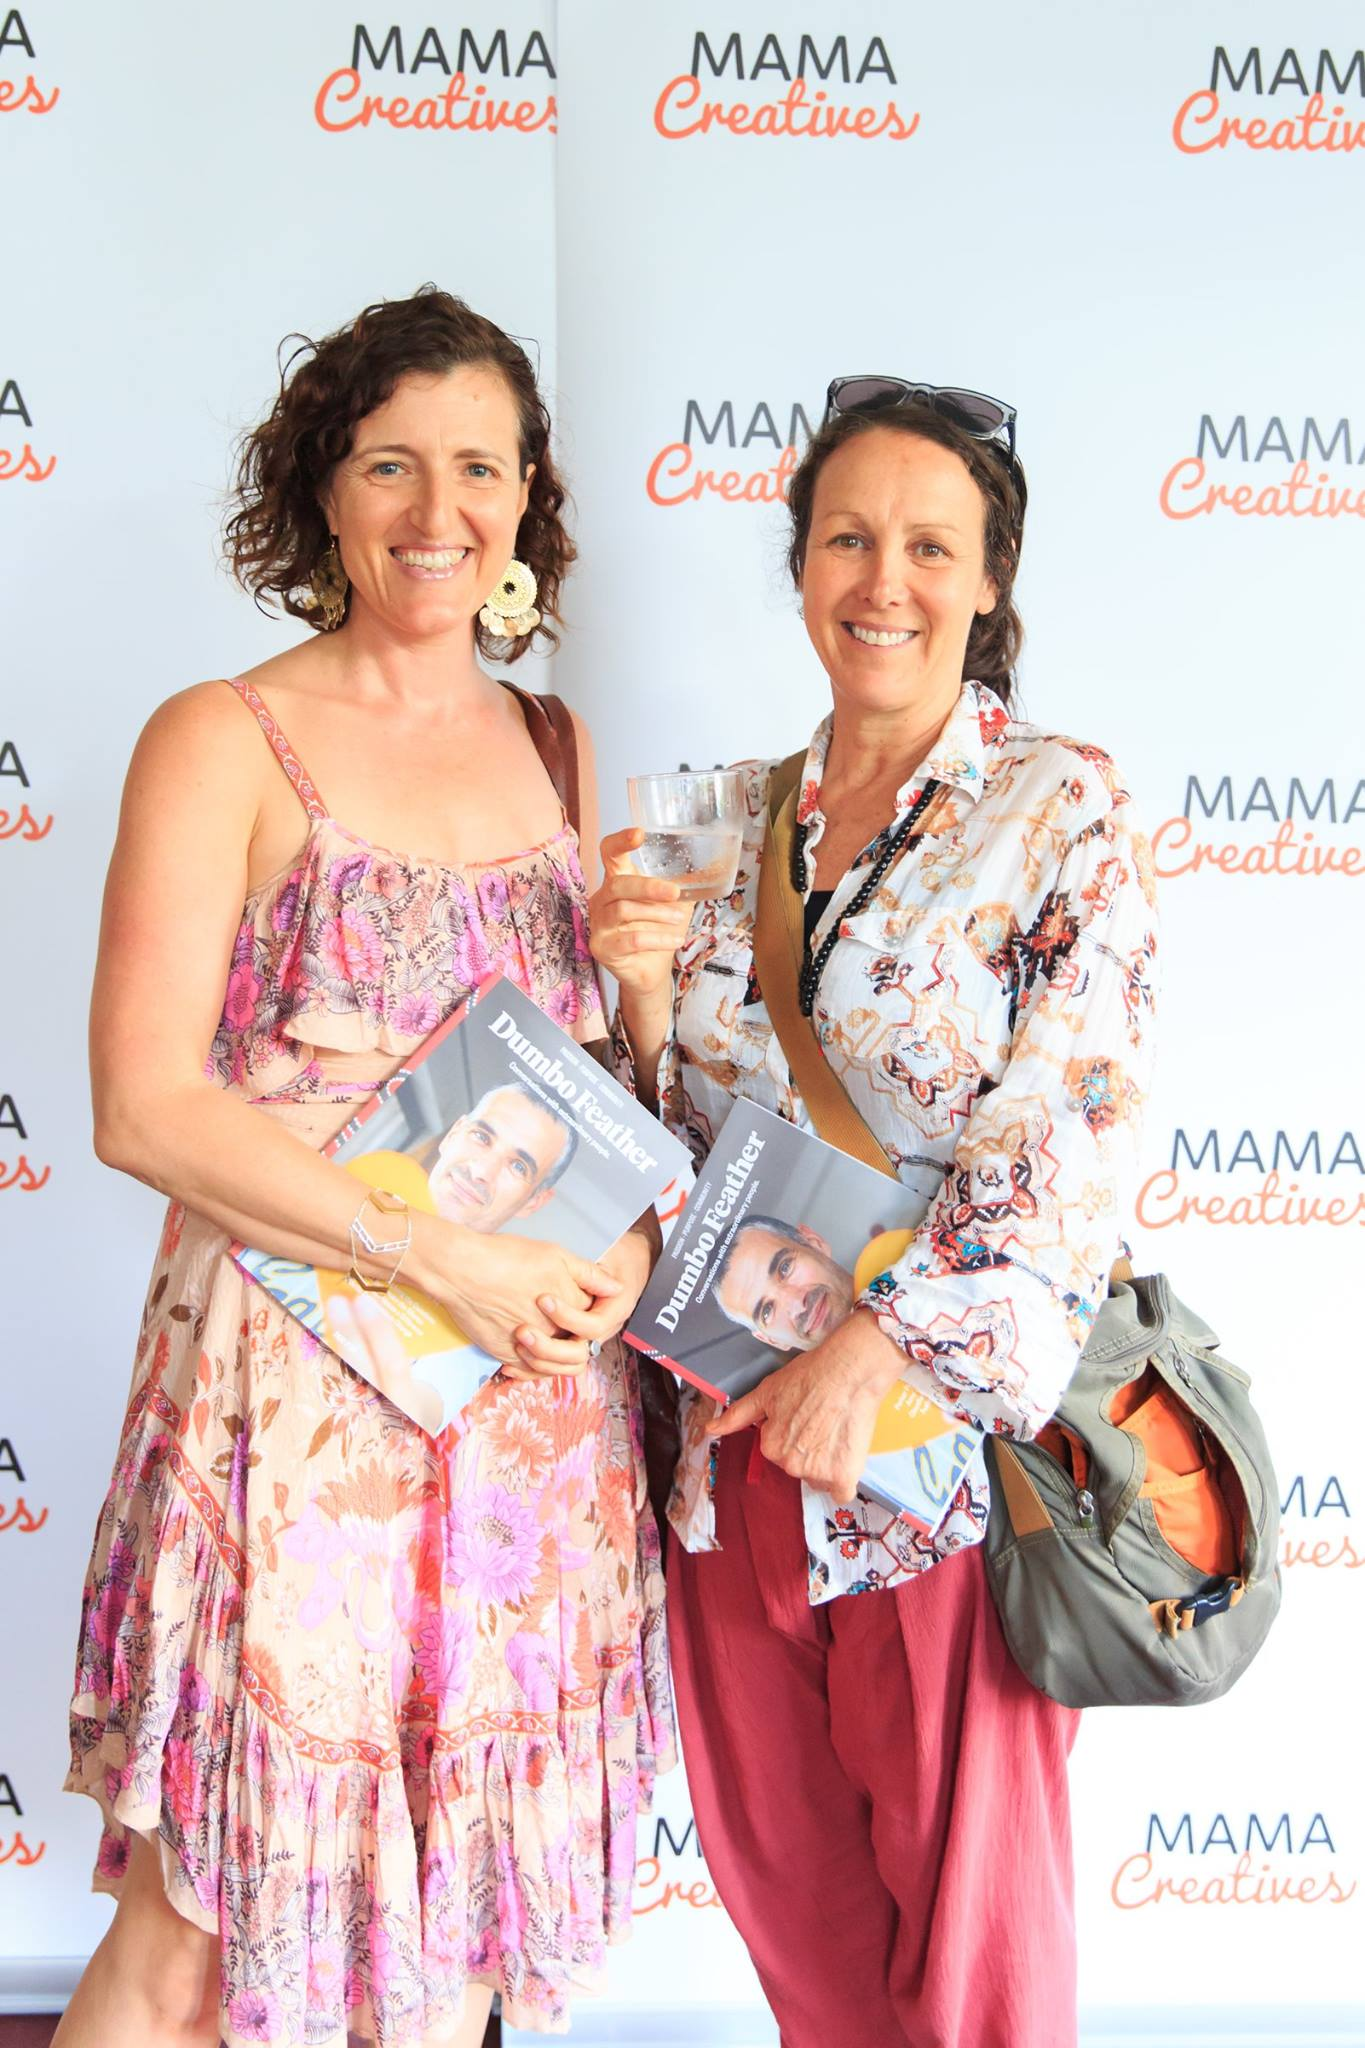 At the Mama Creatives Story Slam, where 6 women from our community shared personal stories about the theme of 'Courage'.  Hosted by Bron Maxabella founder of Maxabella Loves and Mumlyfe